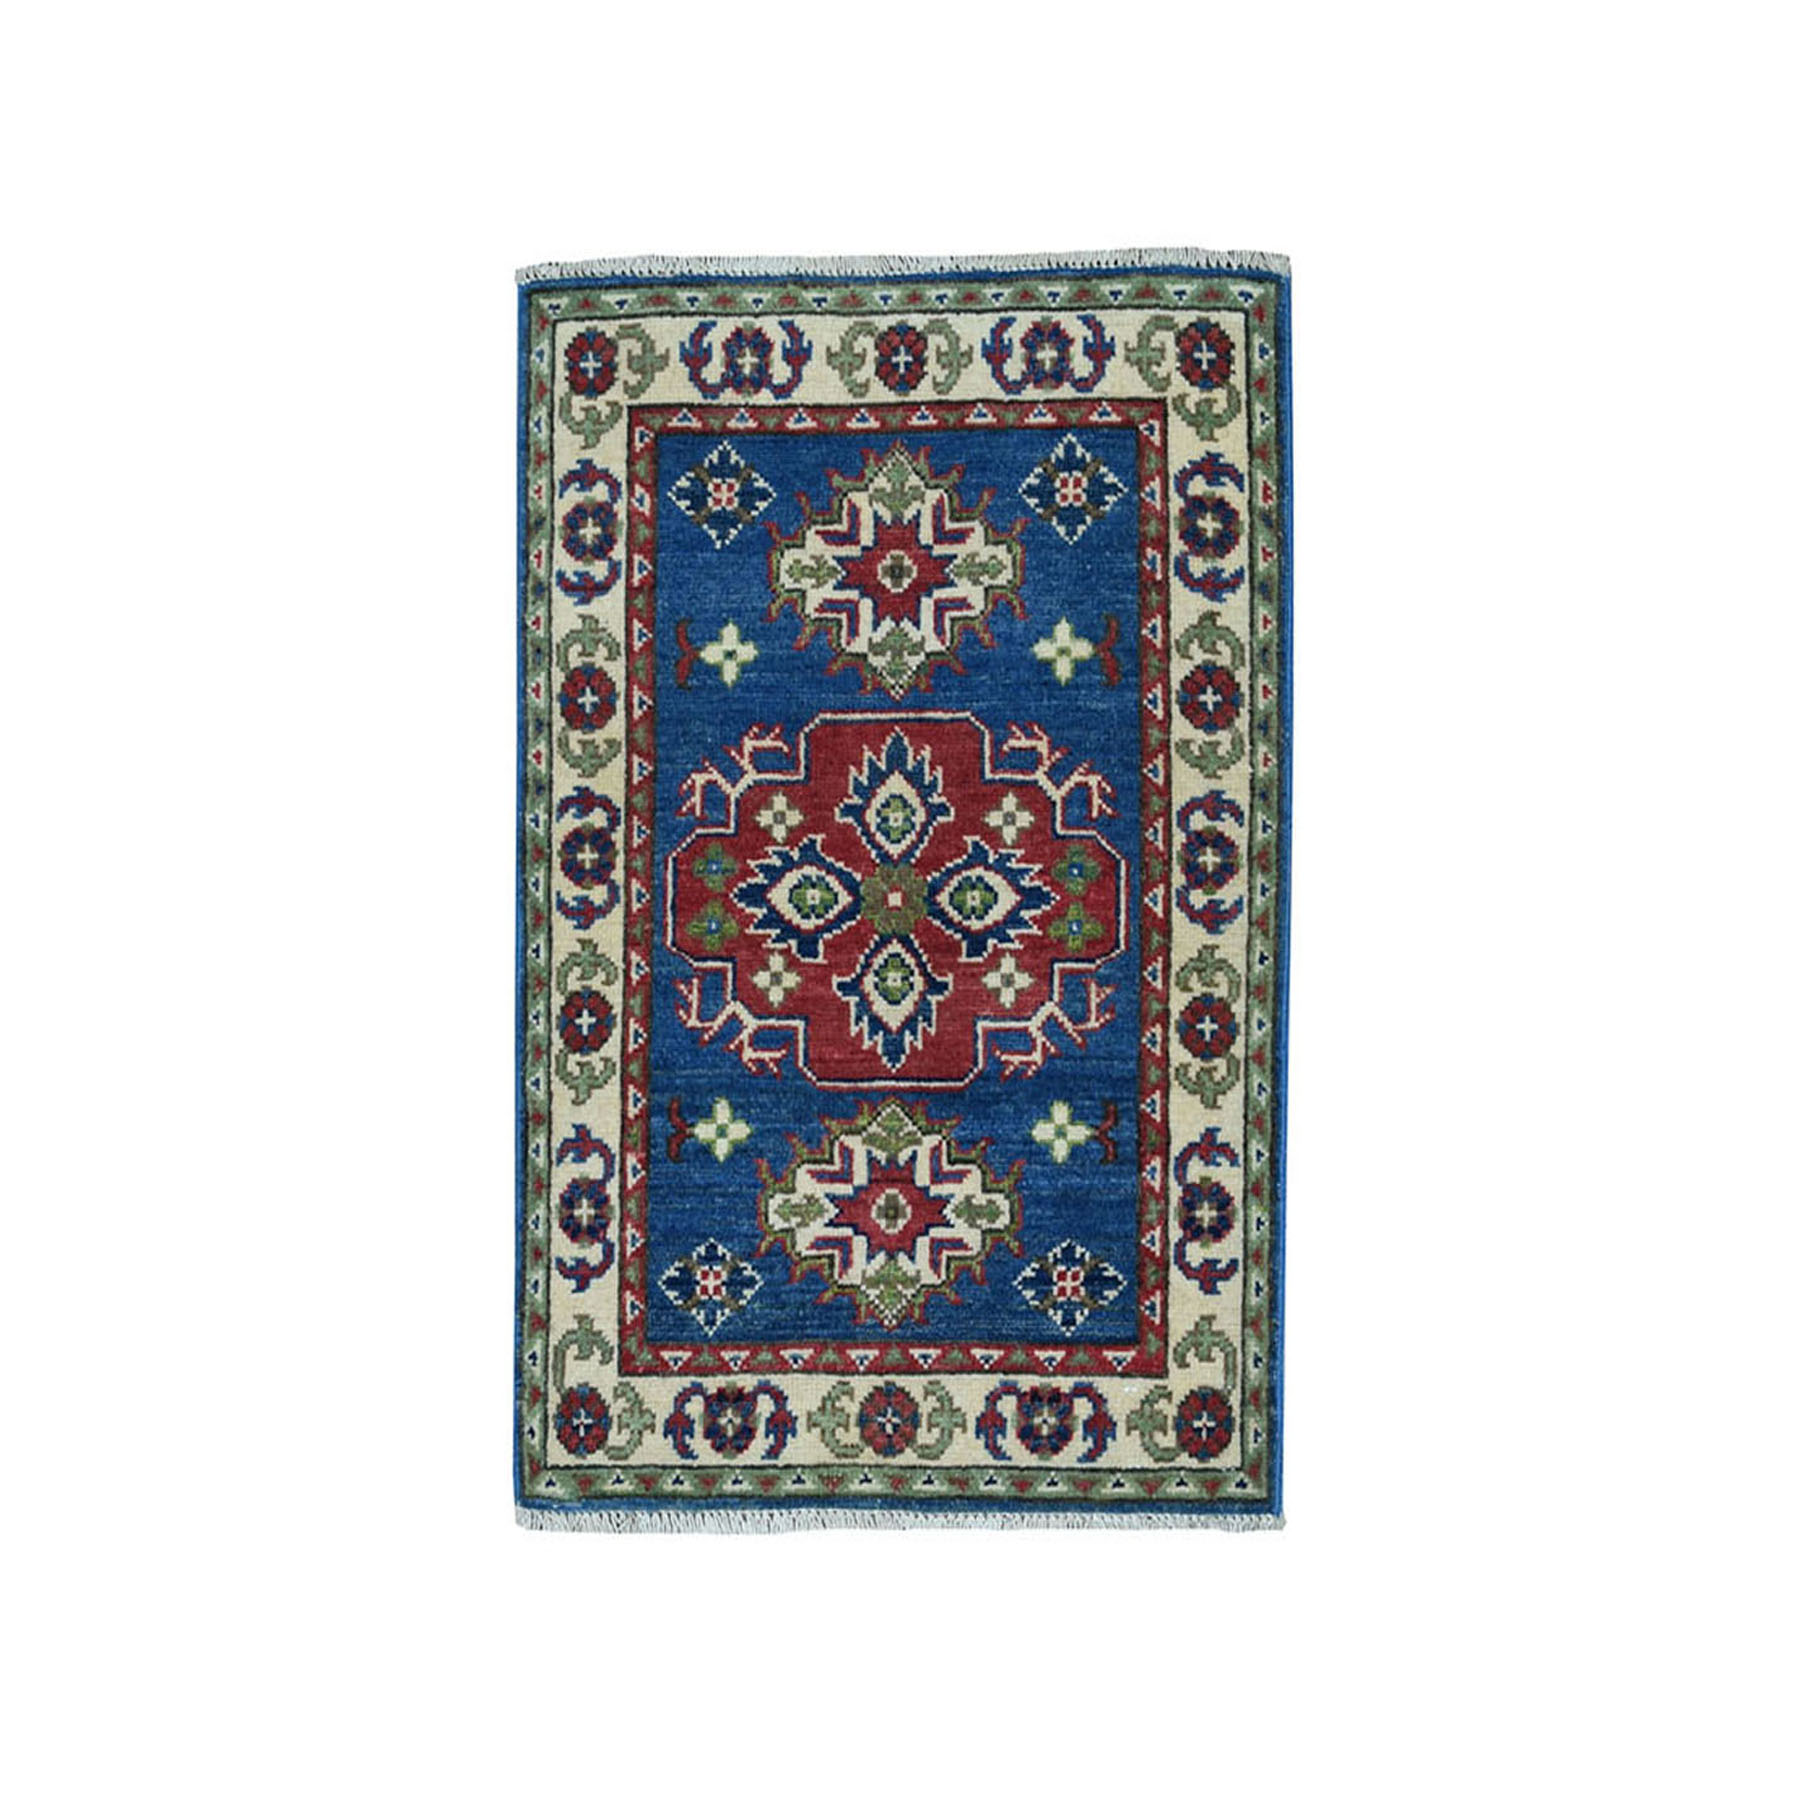 "2'x2'9"" Blue Geometric Design Kazak Pure Wool Hand-Knotted Oriental Rug"